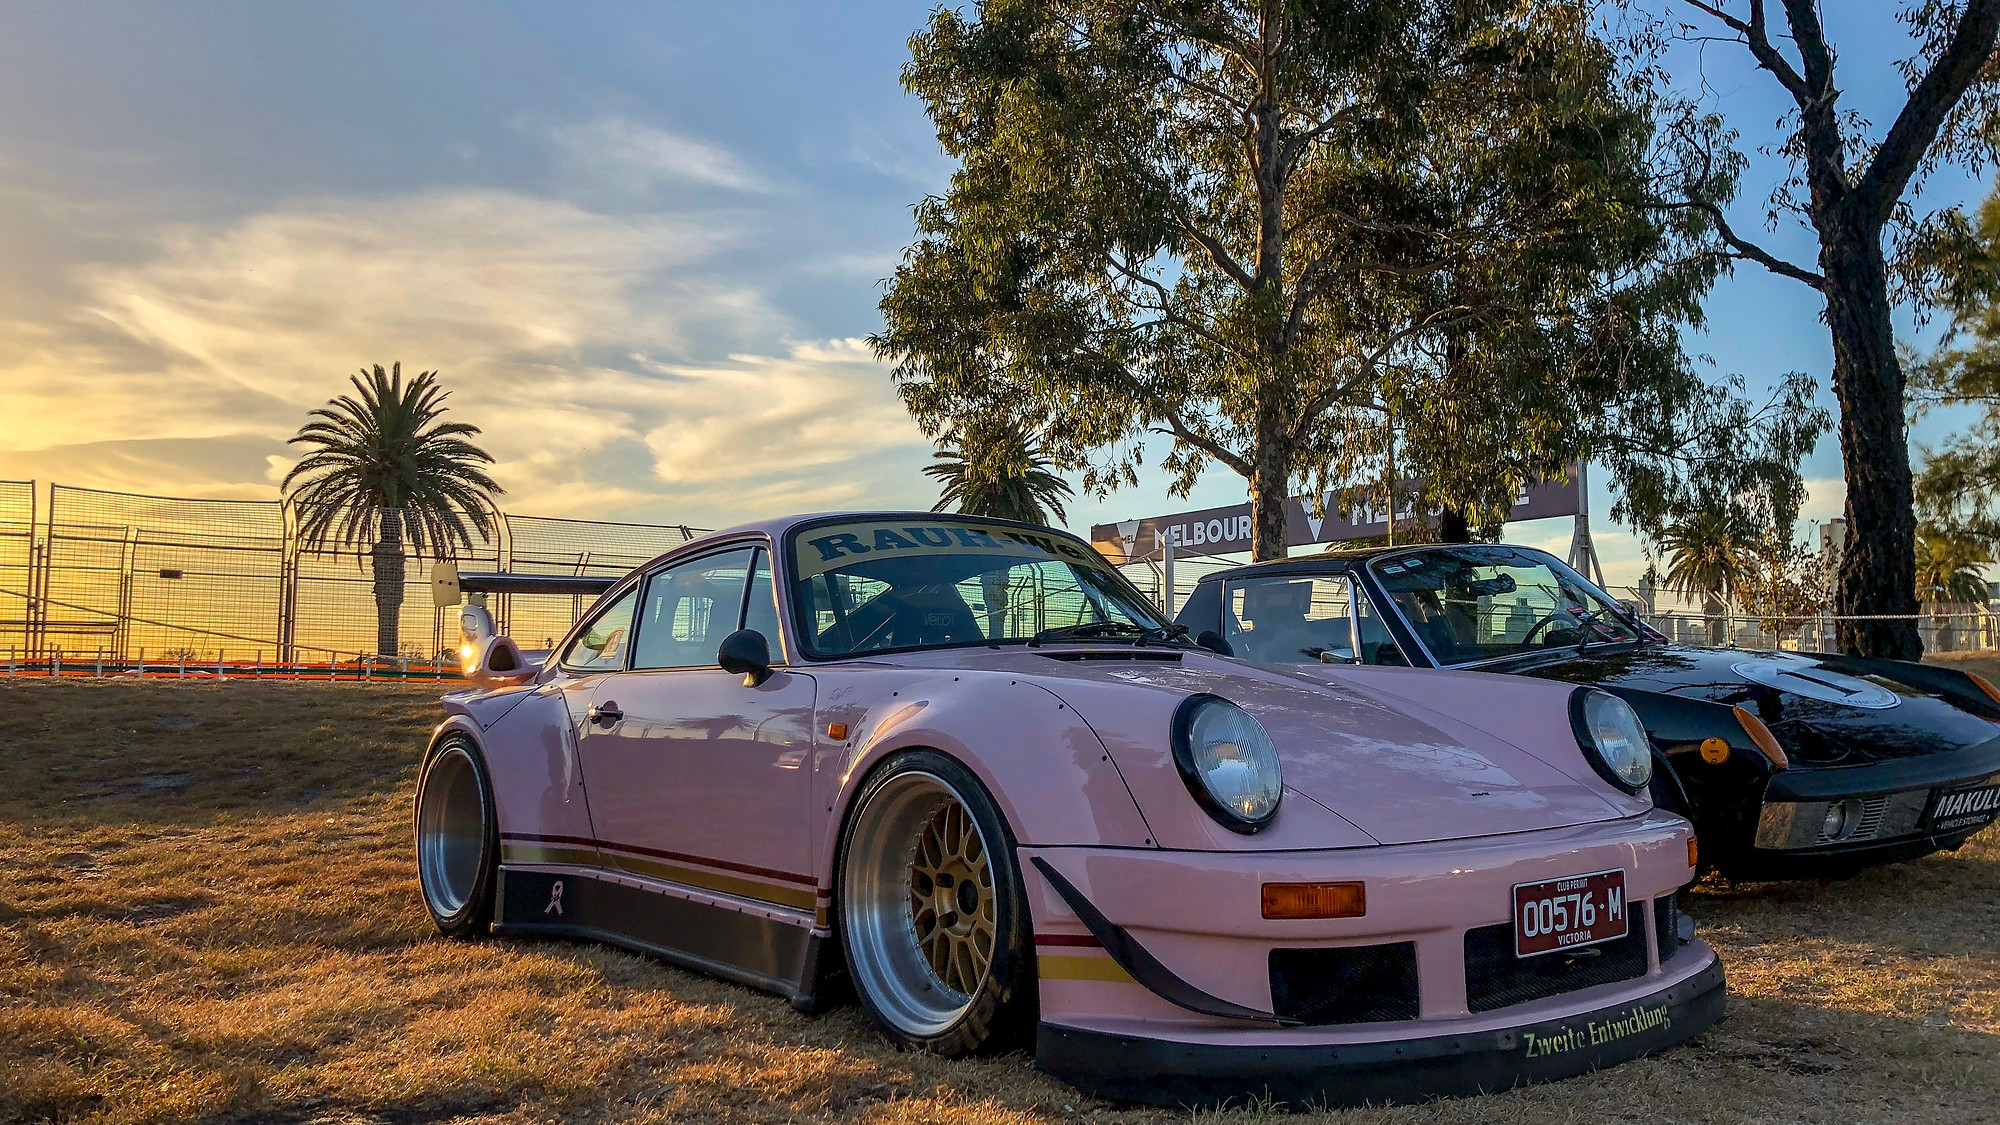 Shooting A Pink Rwb Porsche With An Iphone